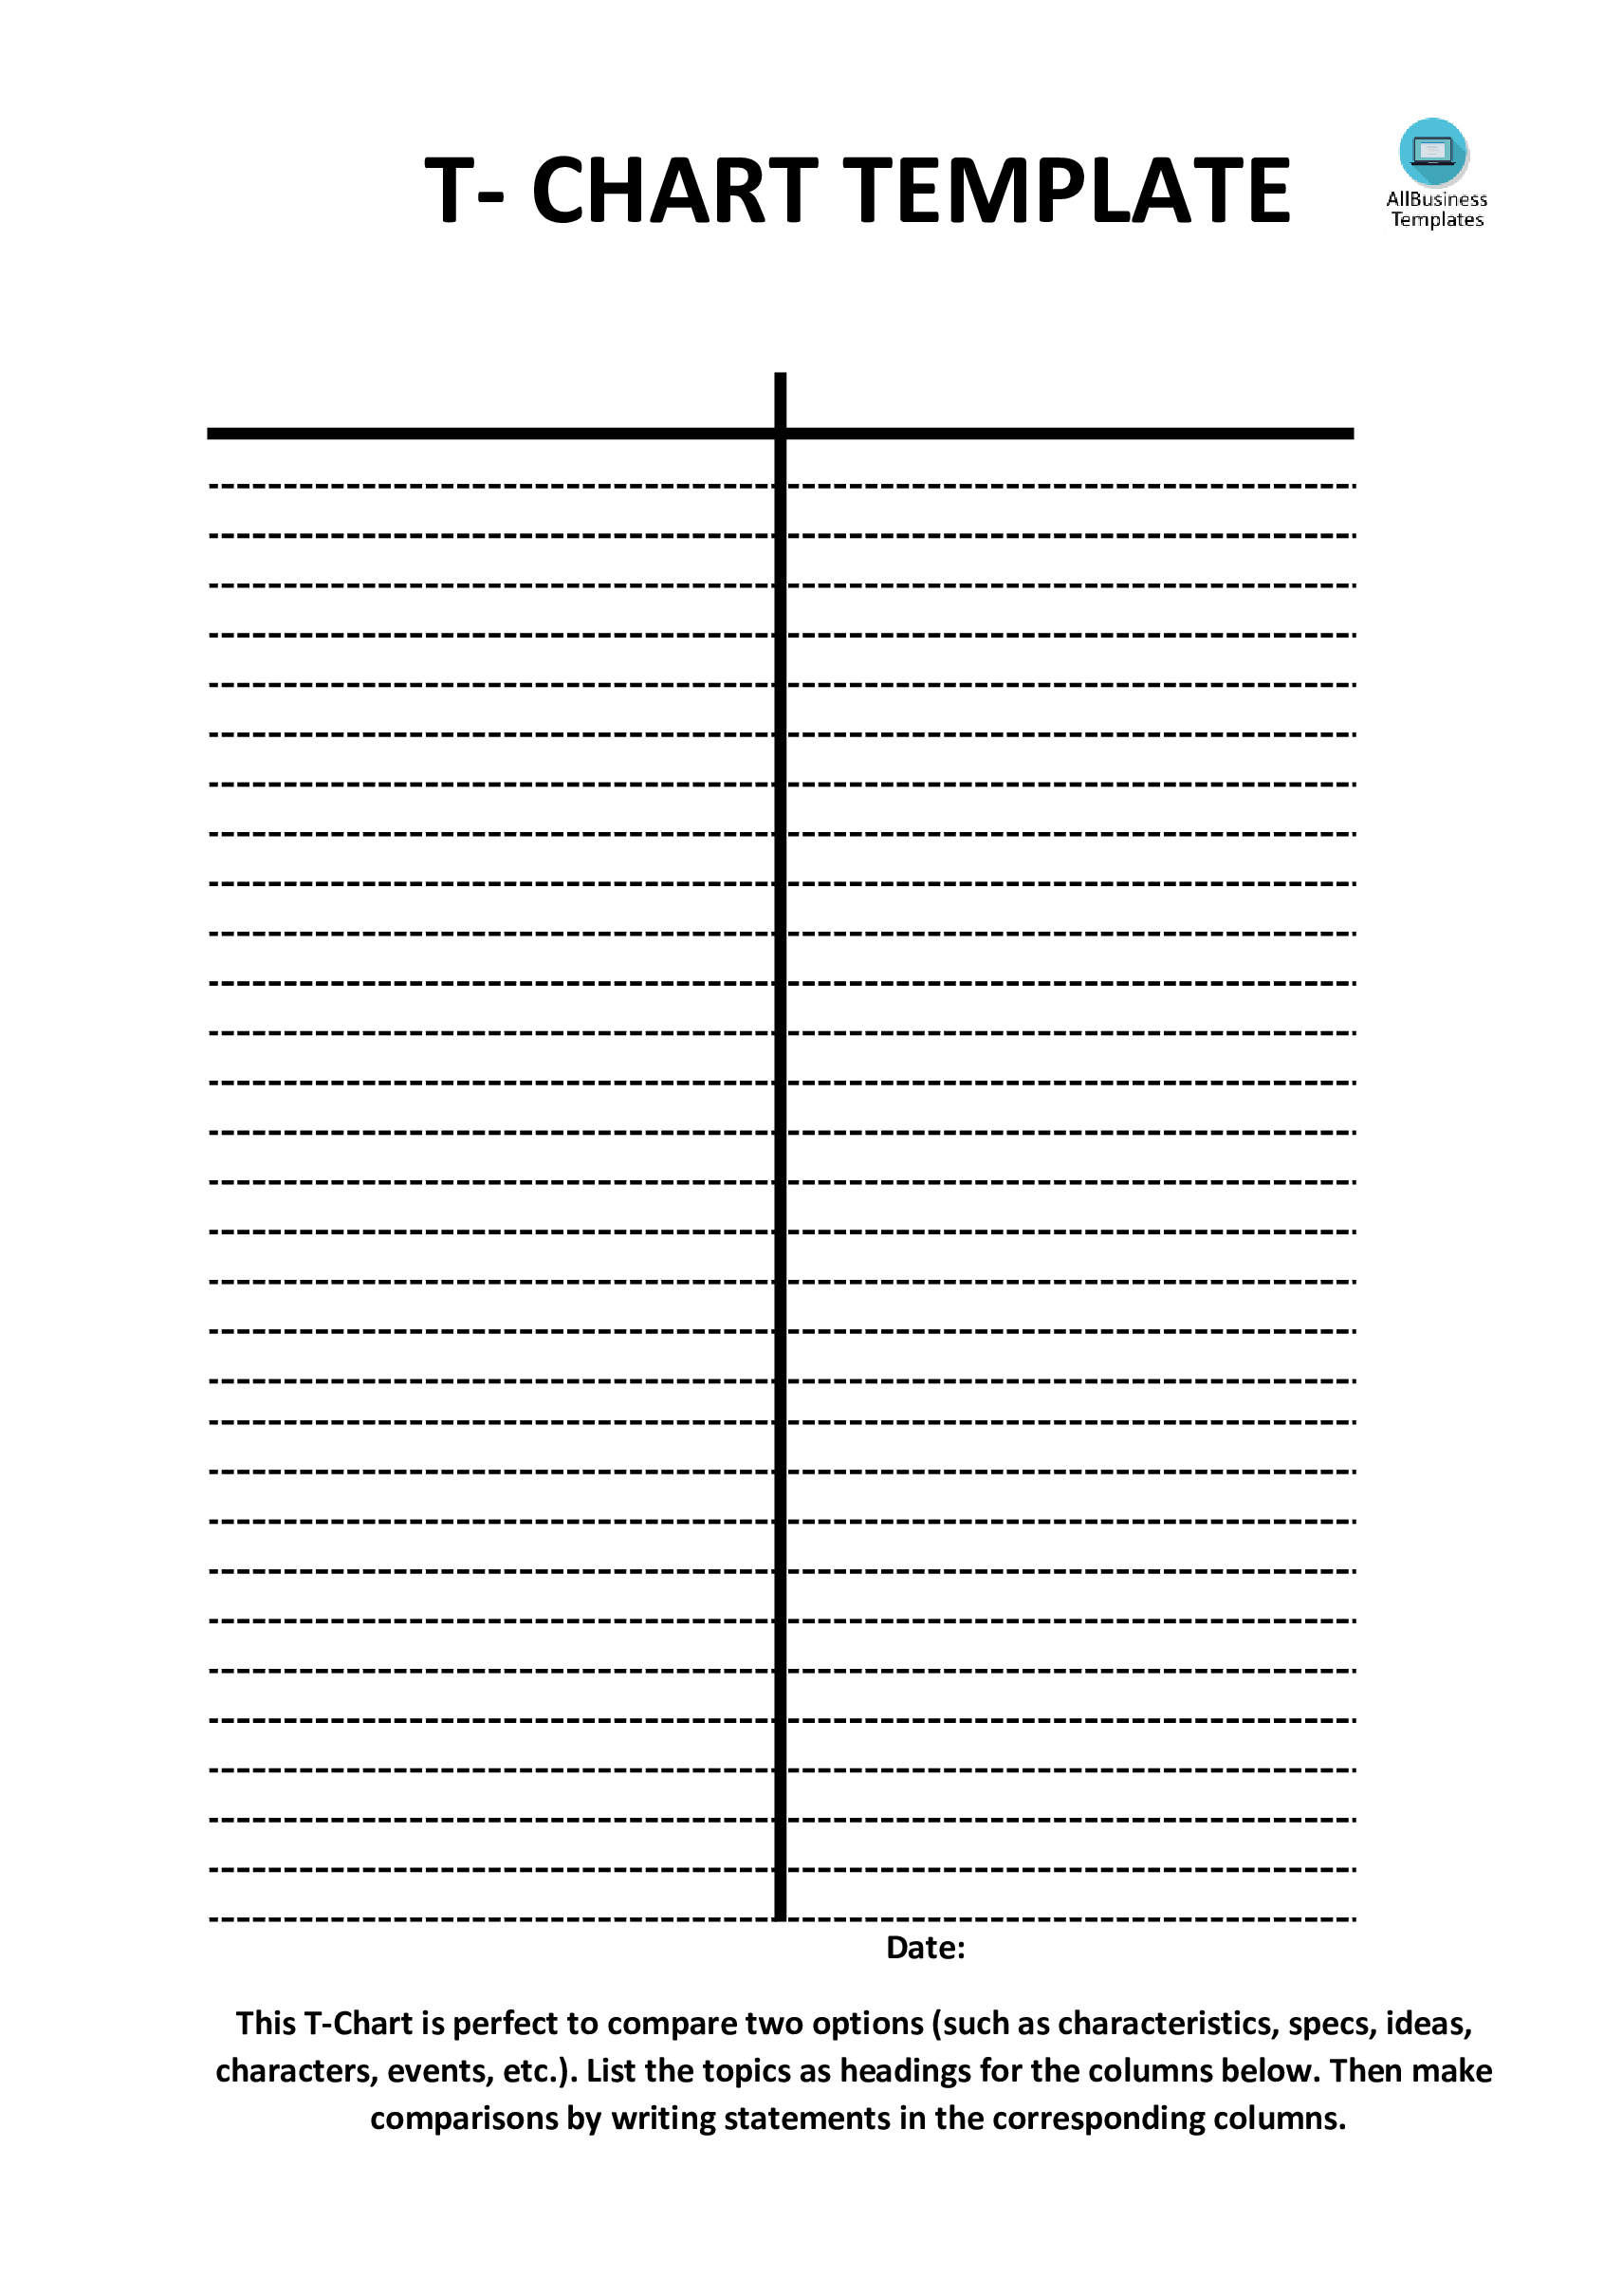 T Chart Template vertically positioned - Do you need a T Chart ...